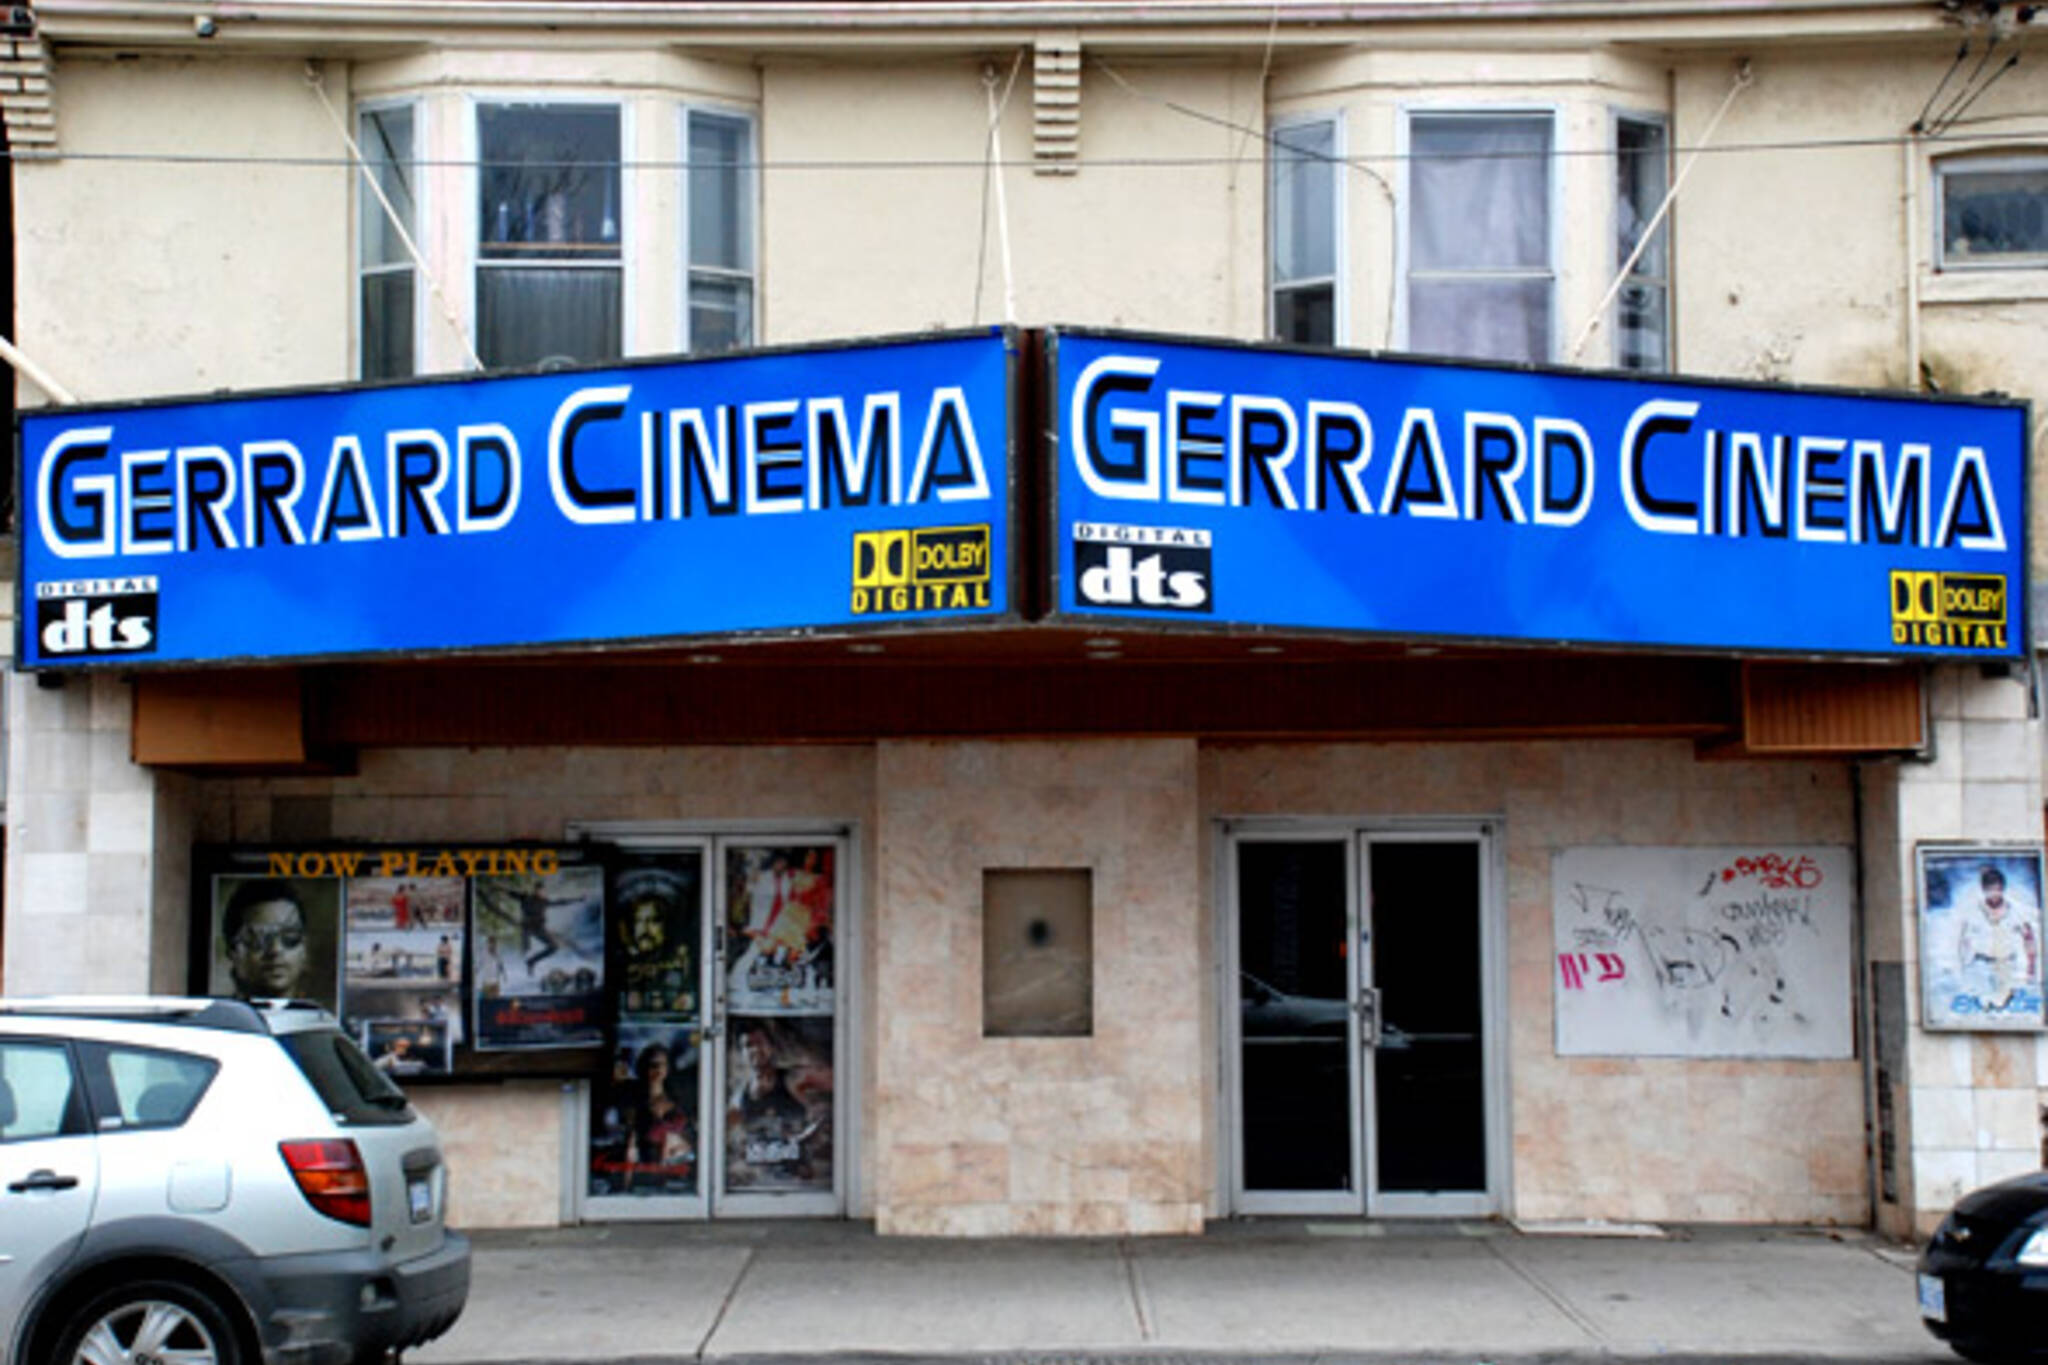 Gerrard Cinema Projection Booth